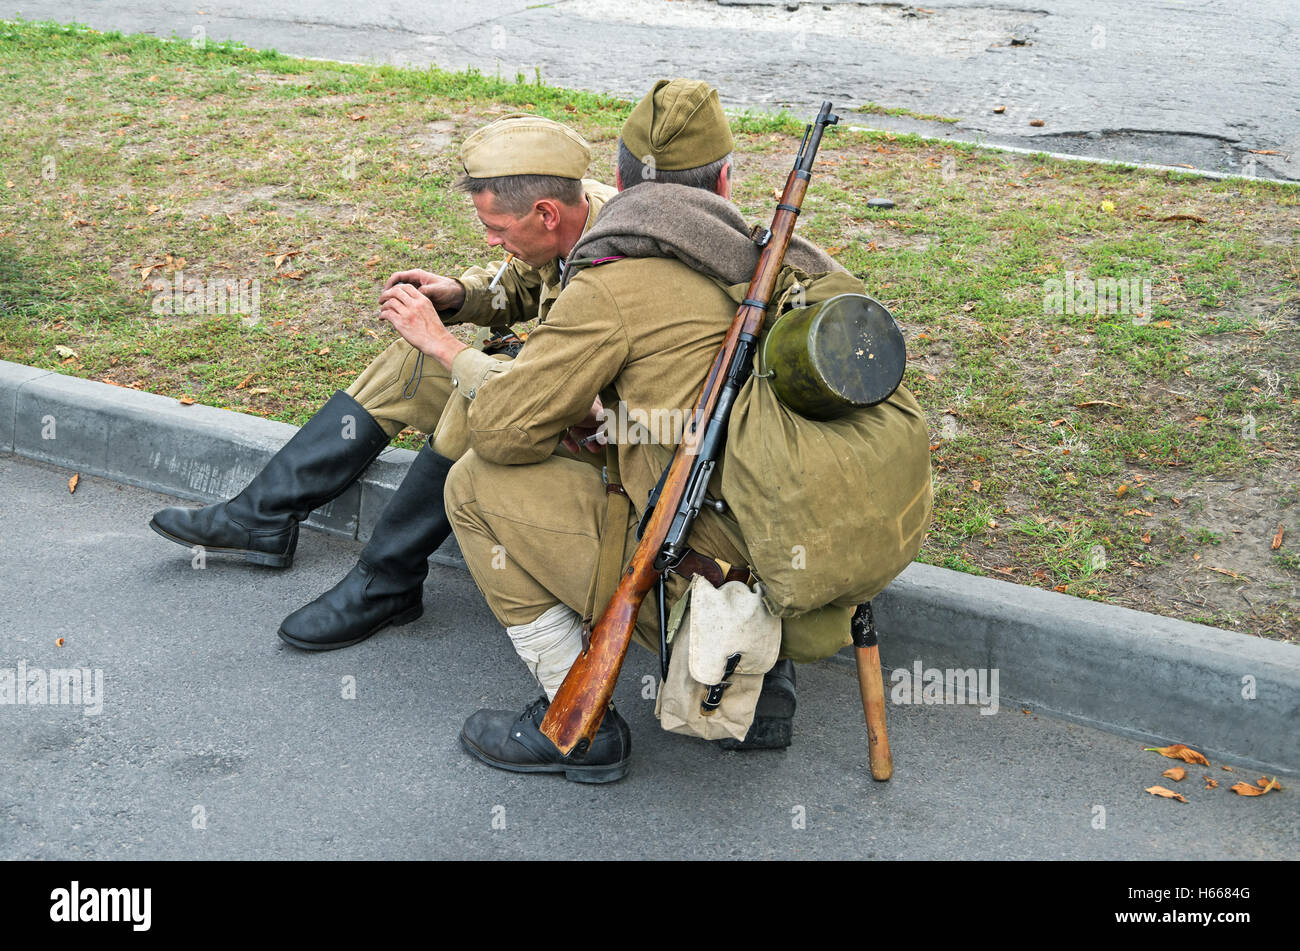 Dnepropetrovsk, Ukraine - September 14, 2013: Group of unidentified re-enactors dressed as Soviet soldiers in greatcoat Stock Photo